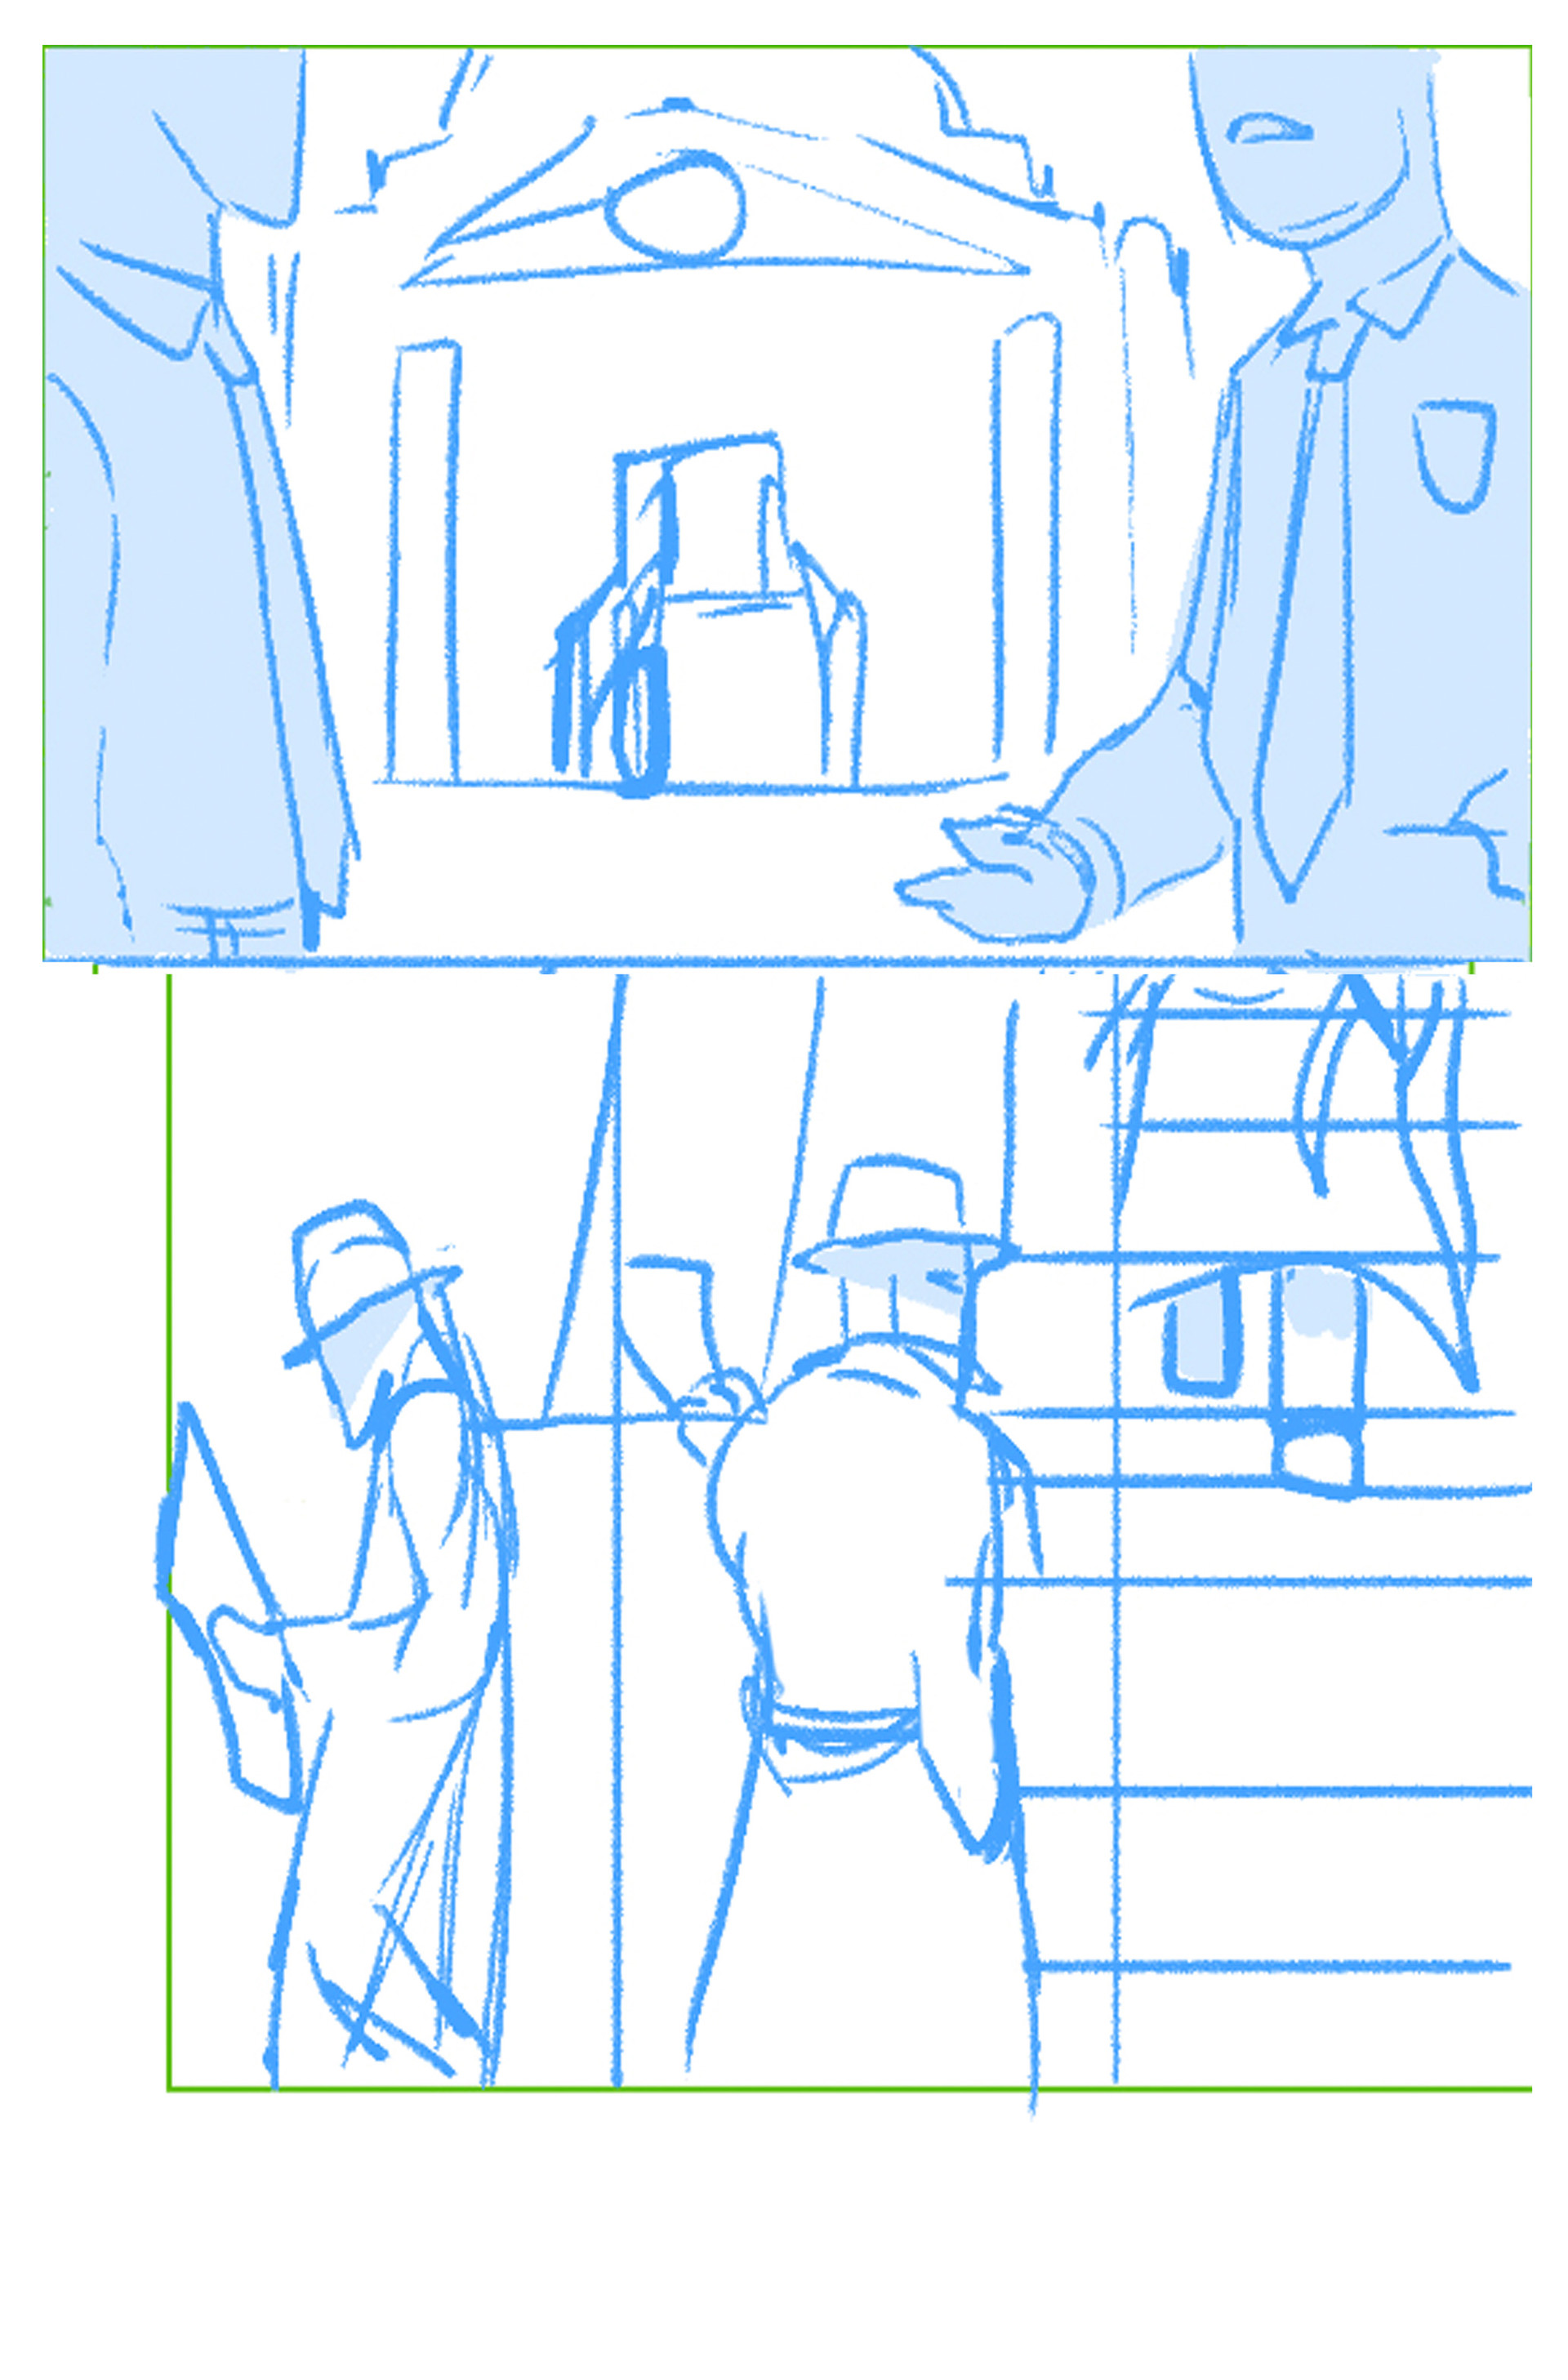 Elliot balson page 1 roughs royal